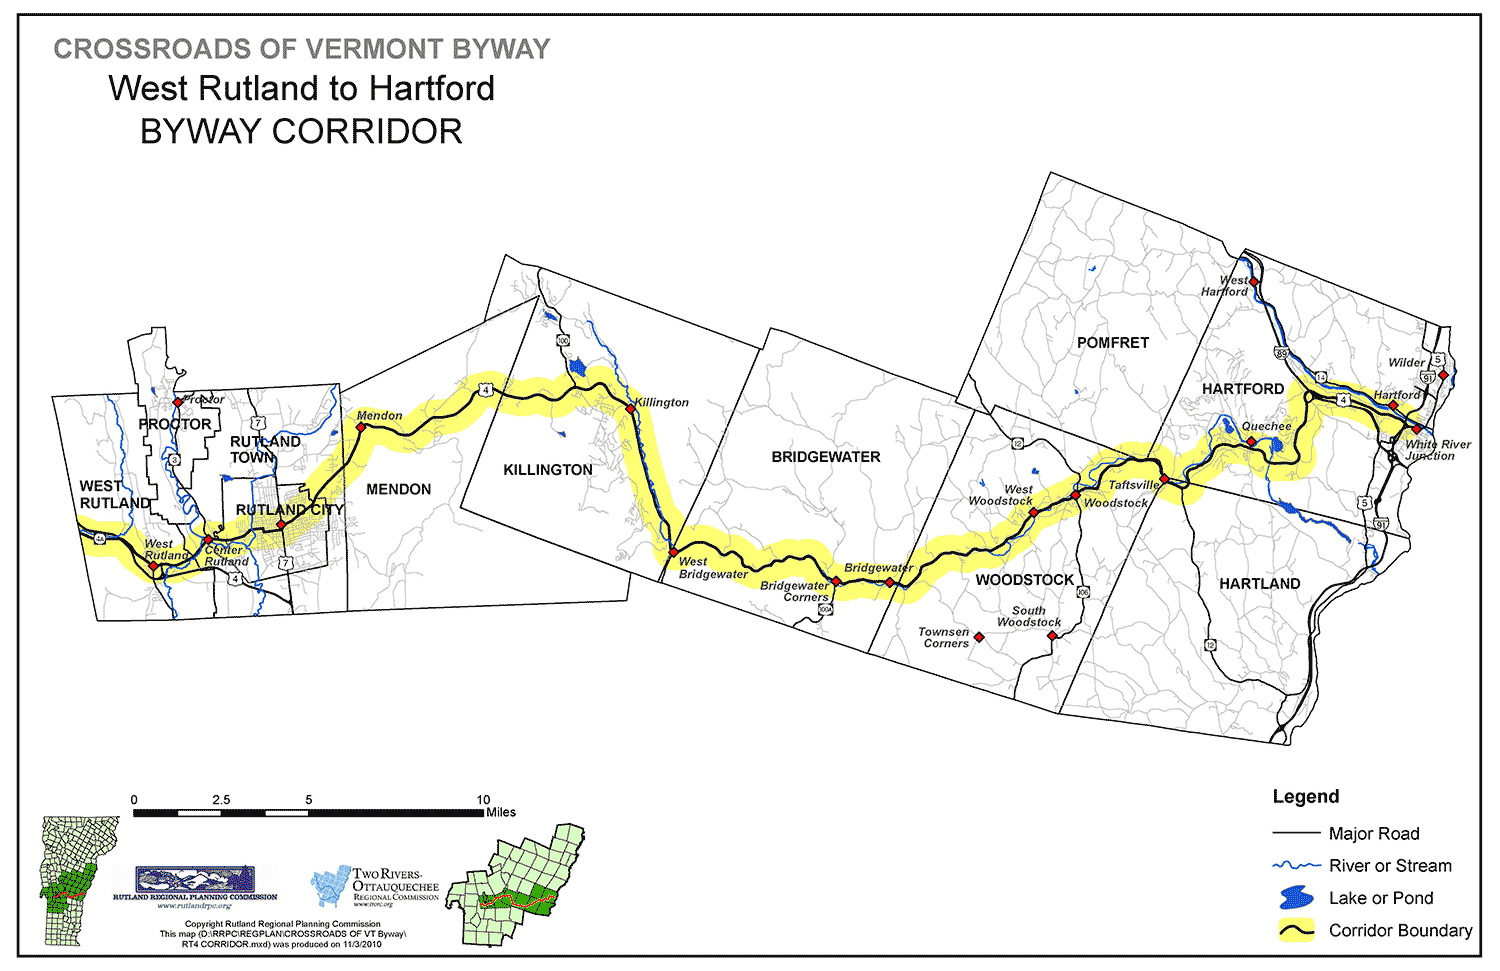 Crossroads-of-Vermont-Byway-Map